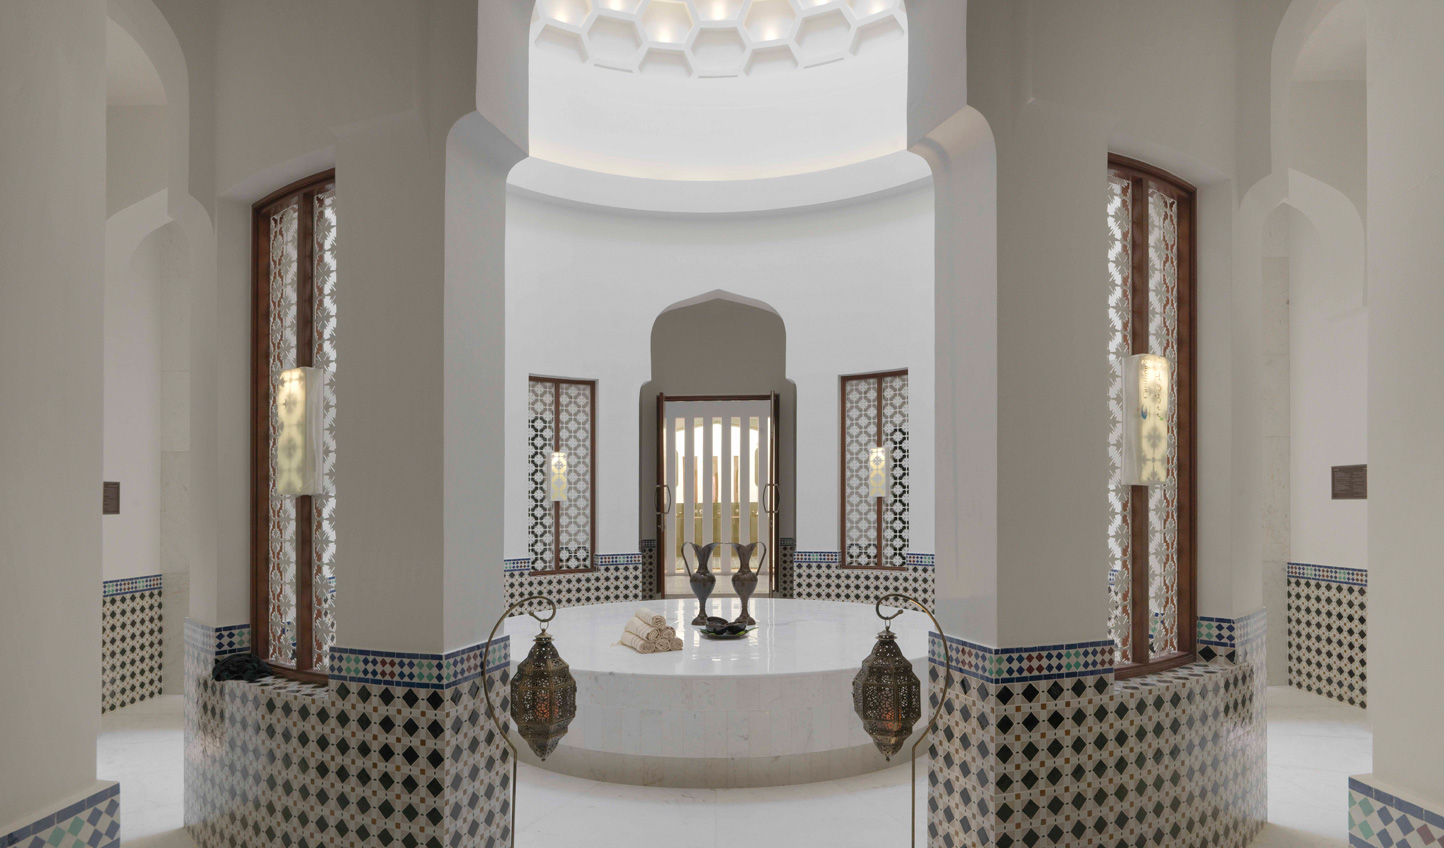 A trip to the Middle East wouldn't be complete without a trip to the Hammam spa